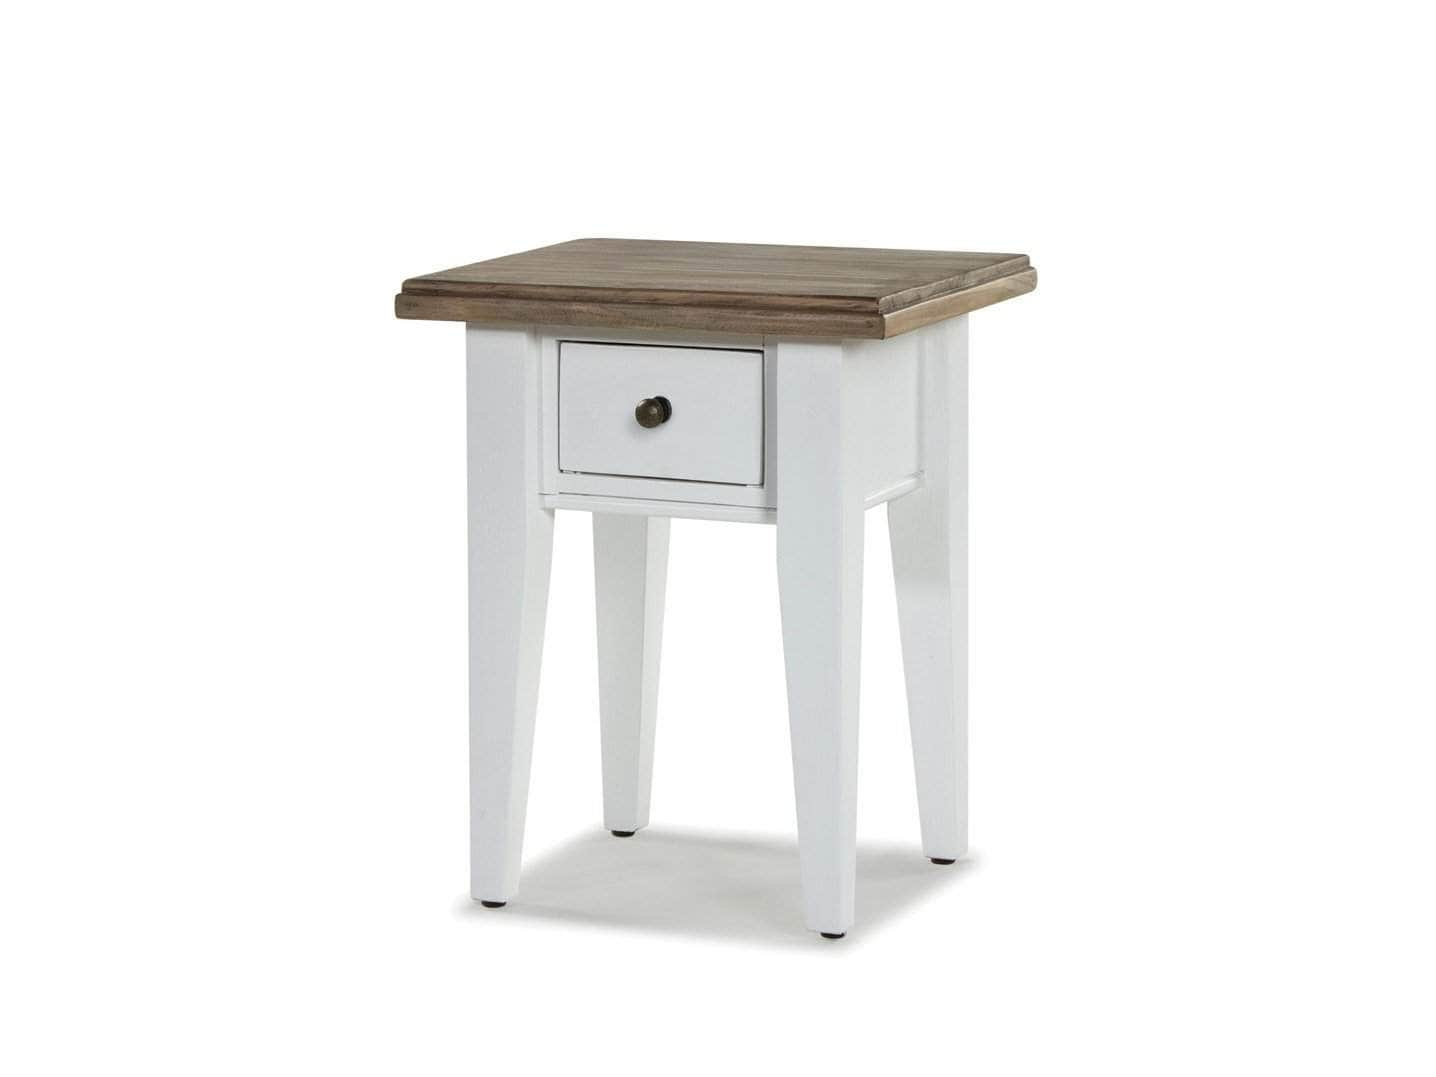 Small, white-painted side table with rustic top and one small drawer